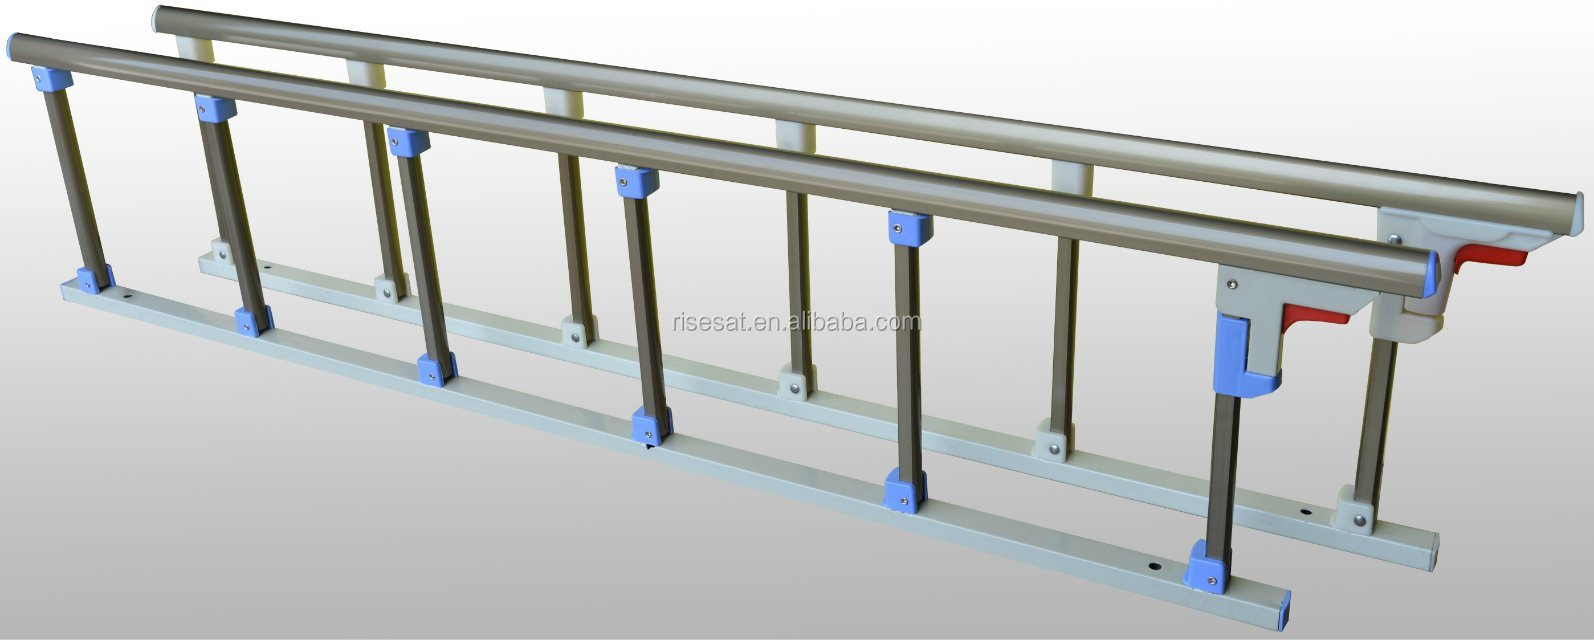 Hospital Bed Guard Rails Suppliers And Manufacturers At Alibaba